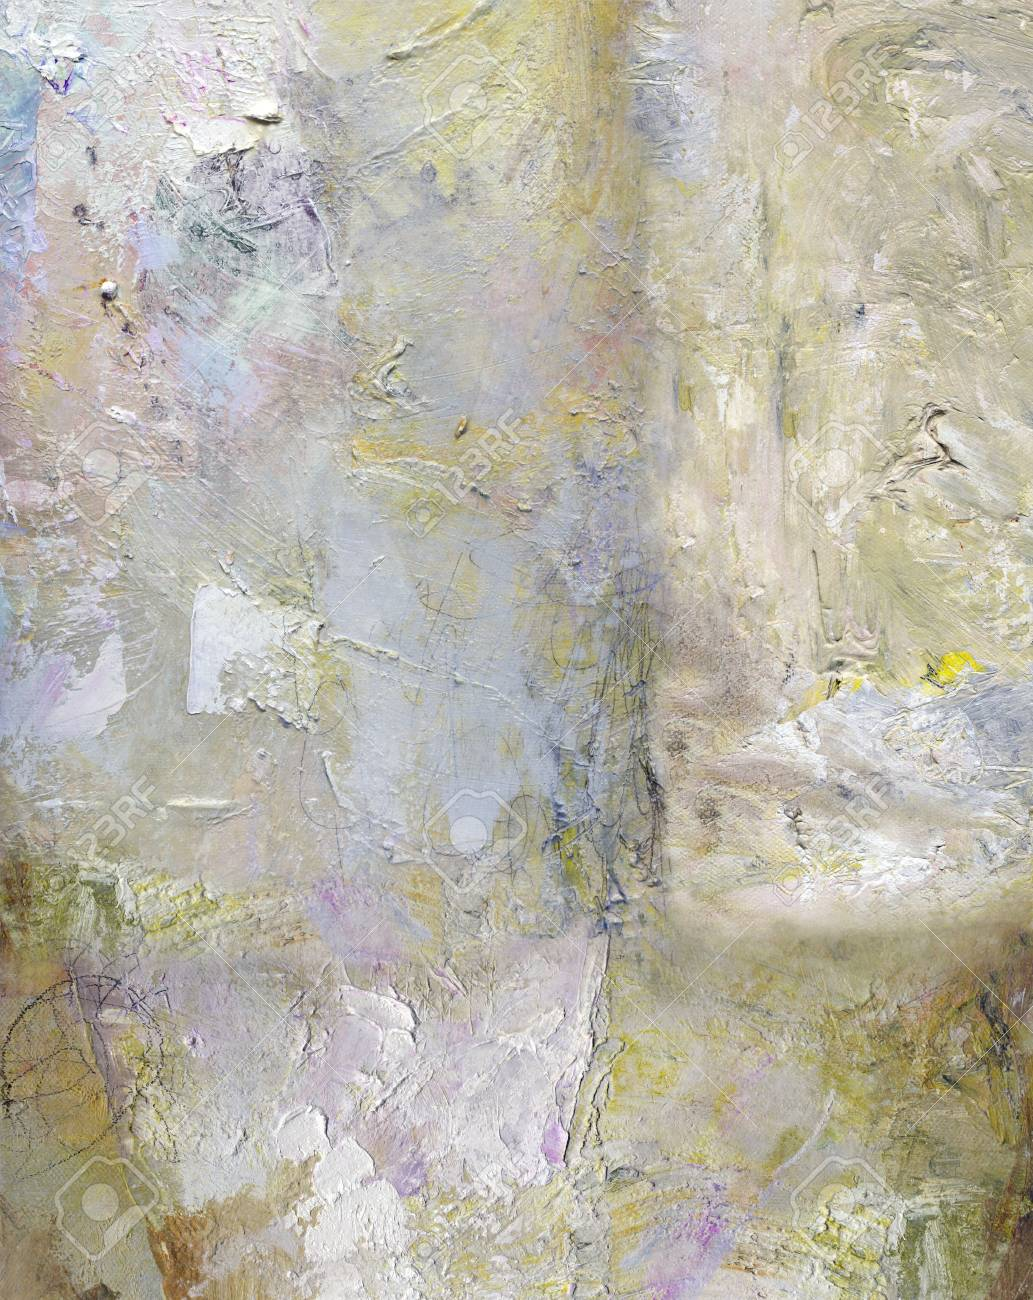 Abstract Layer Artwork Opaque And Transparent Oil Paint Textures